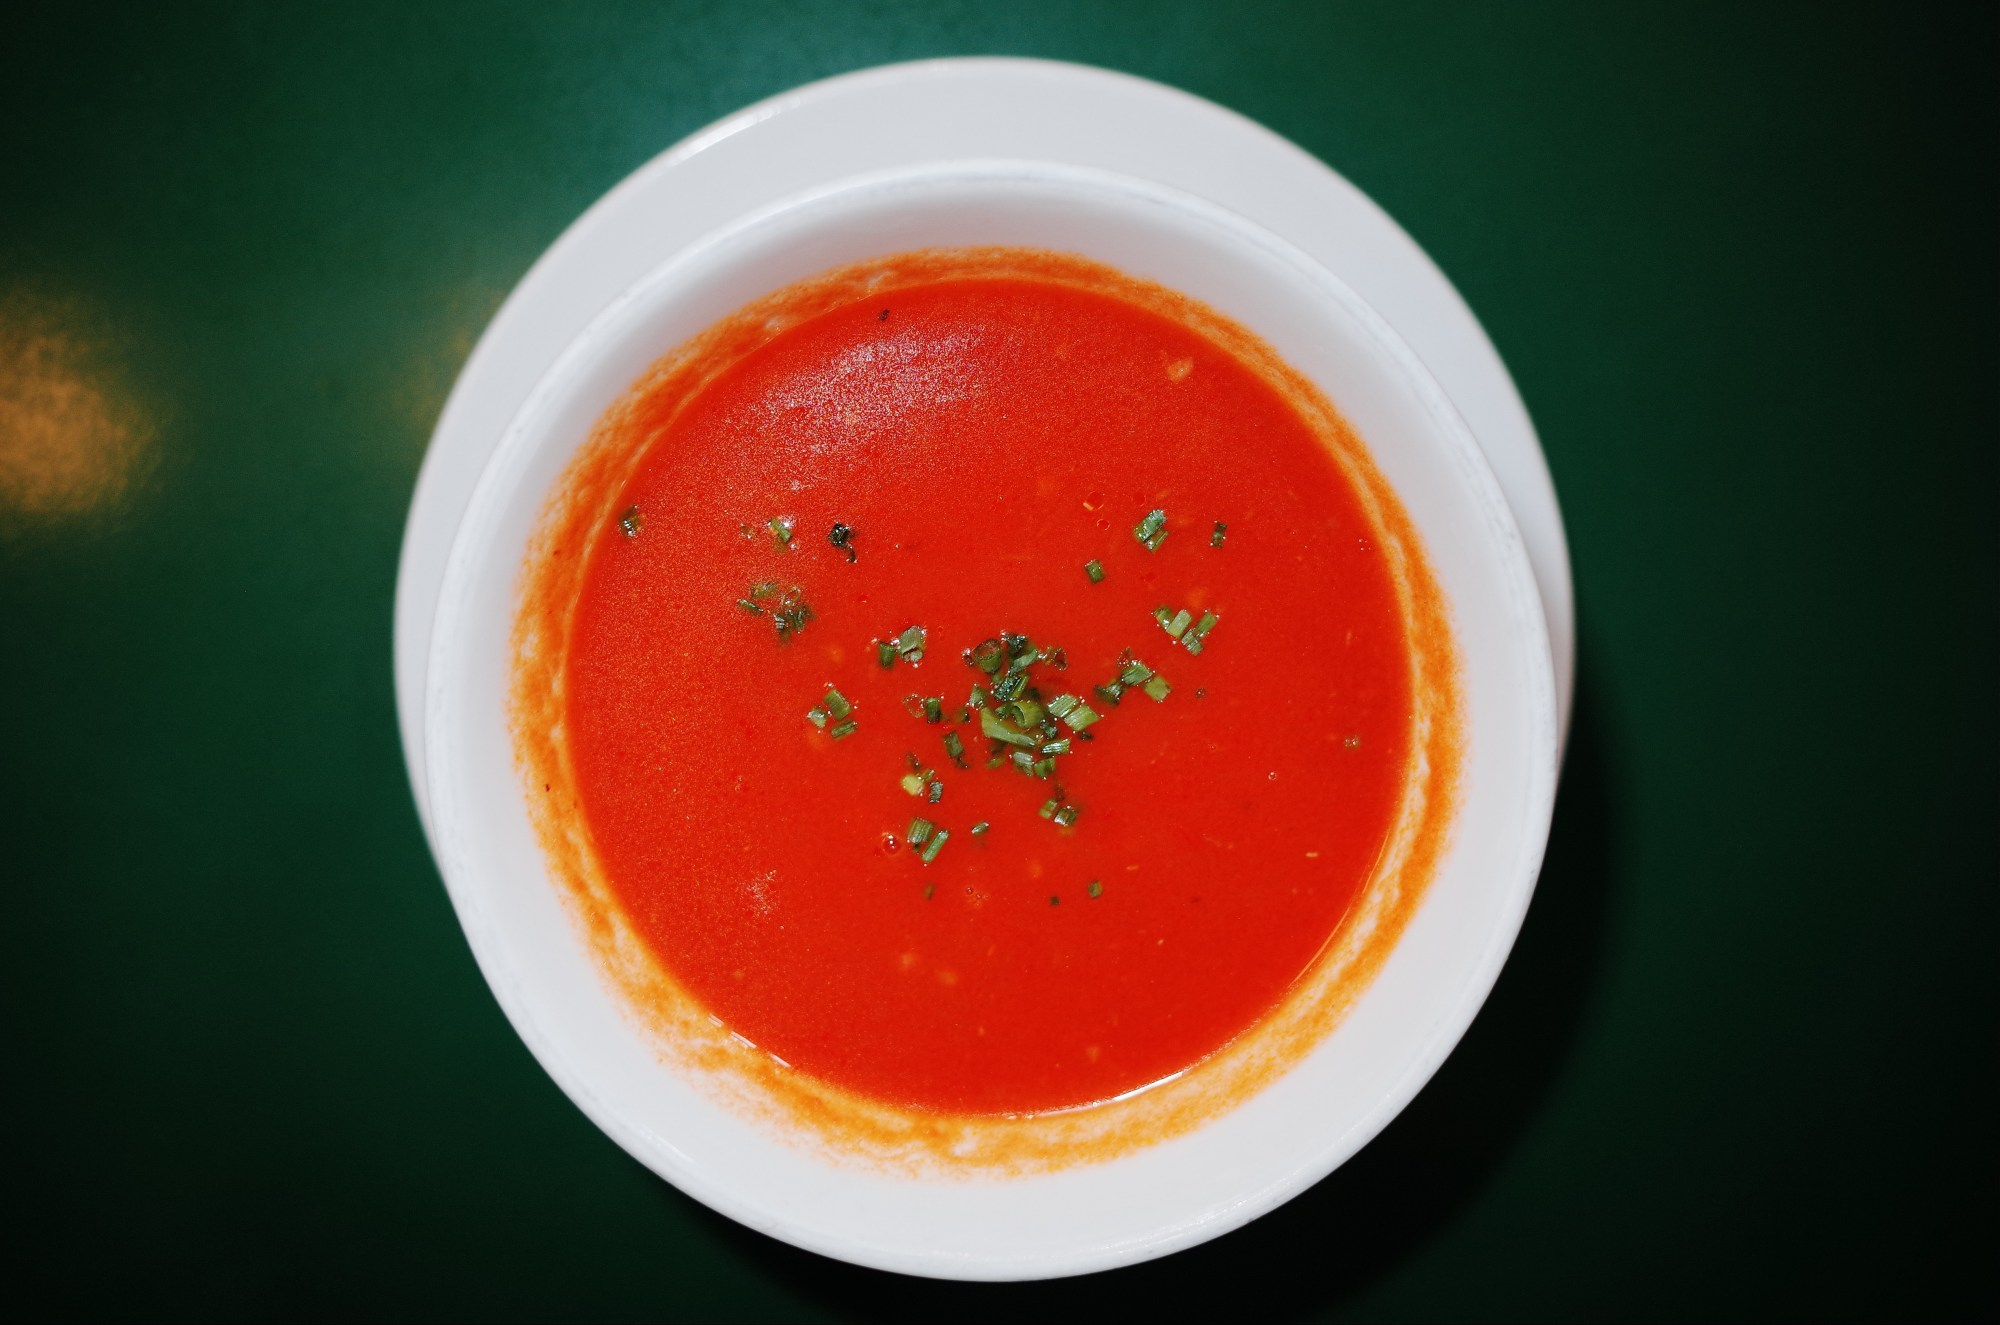 Beauty of red tomato soup against green background